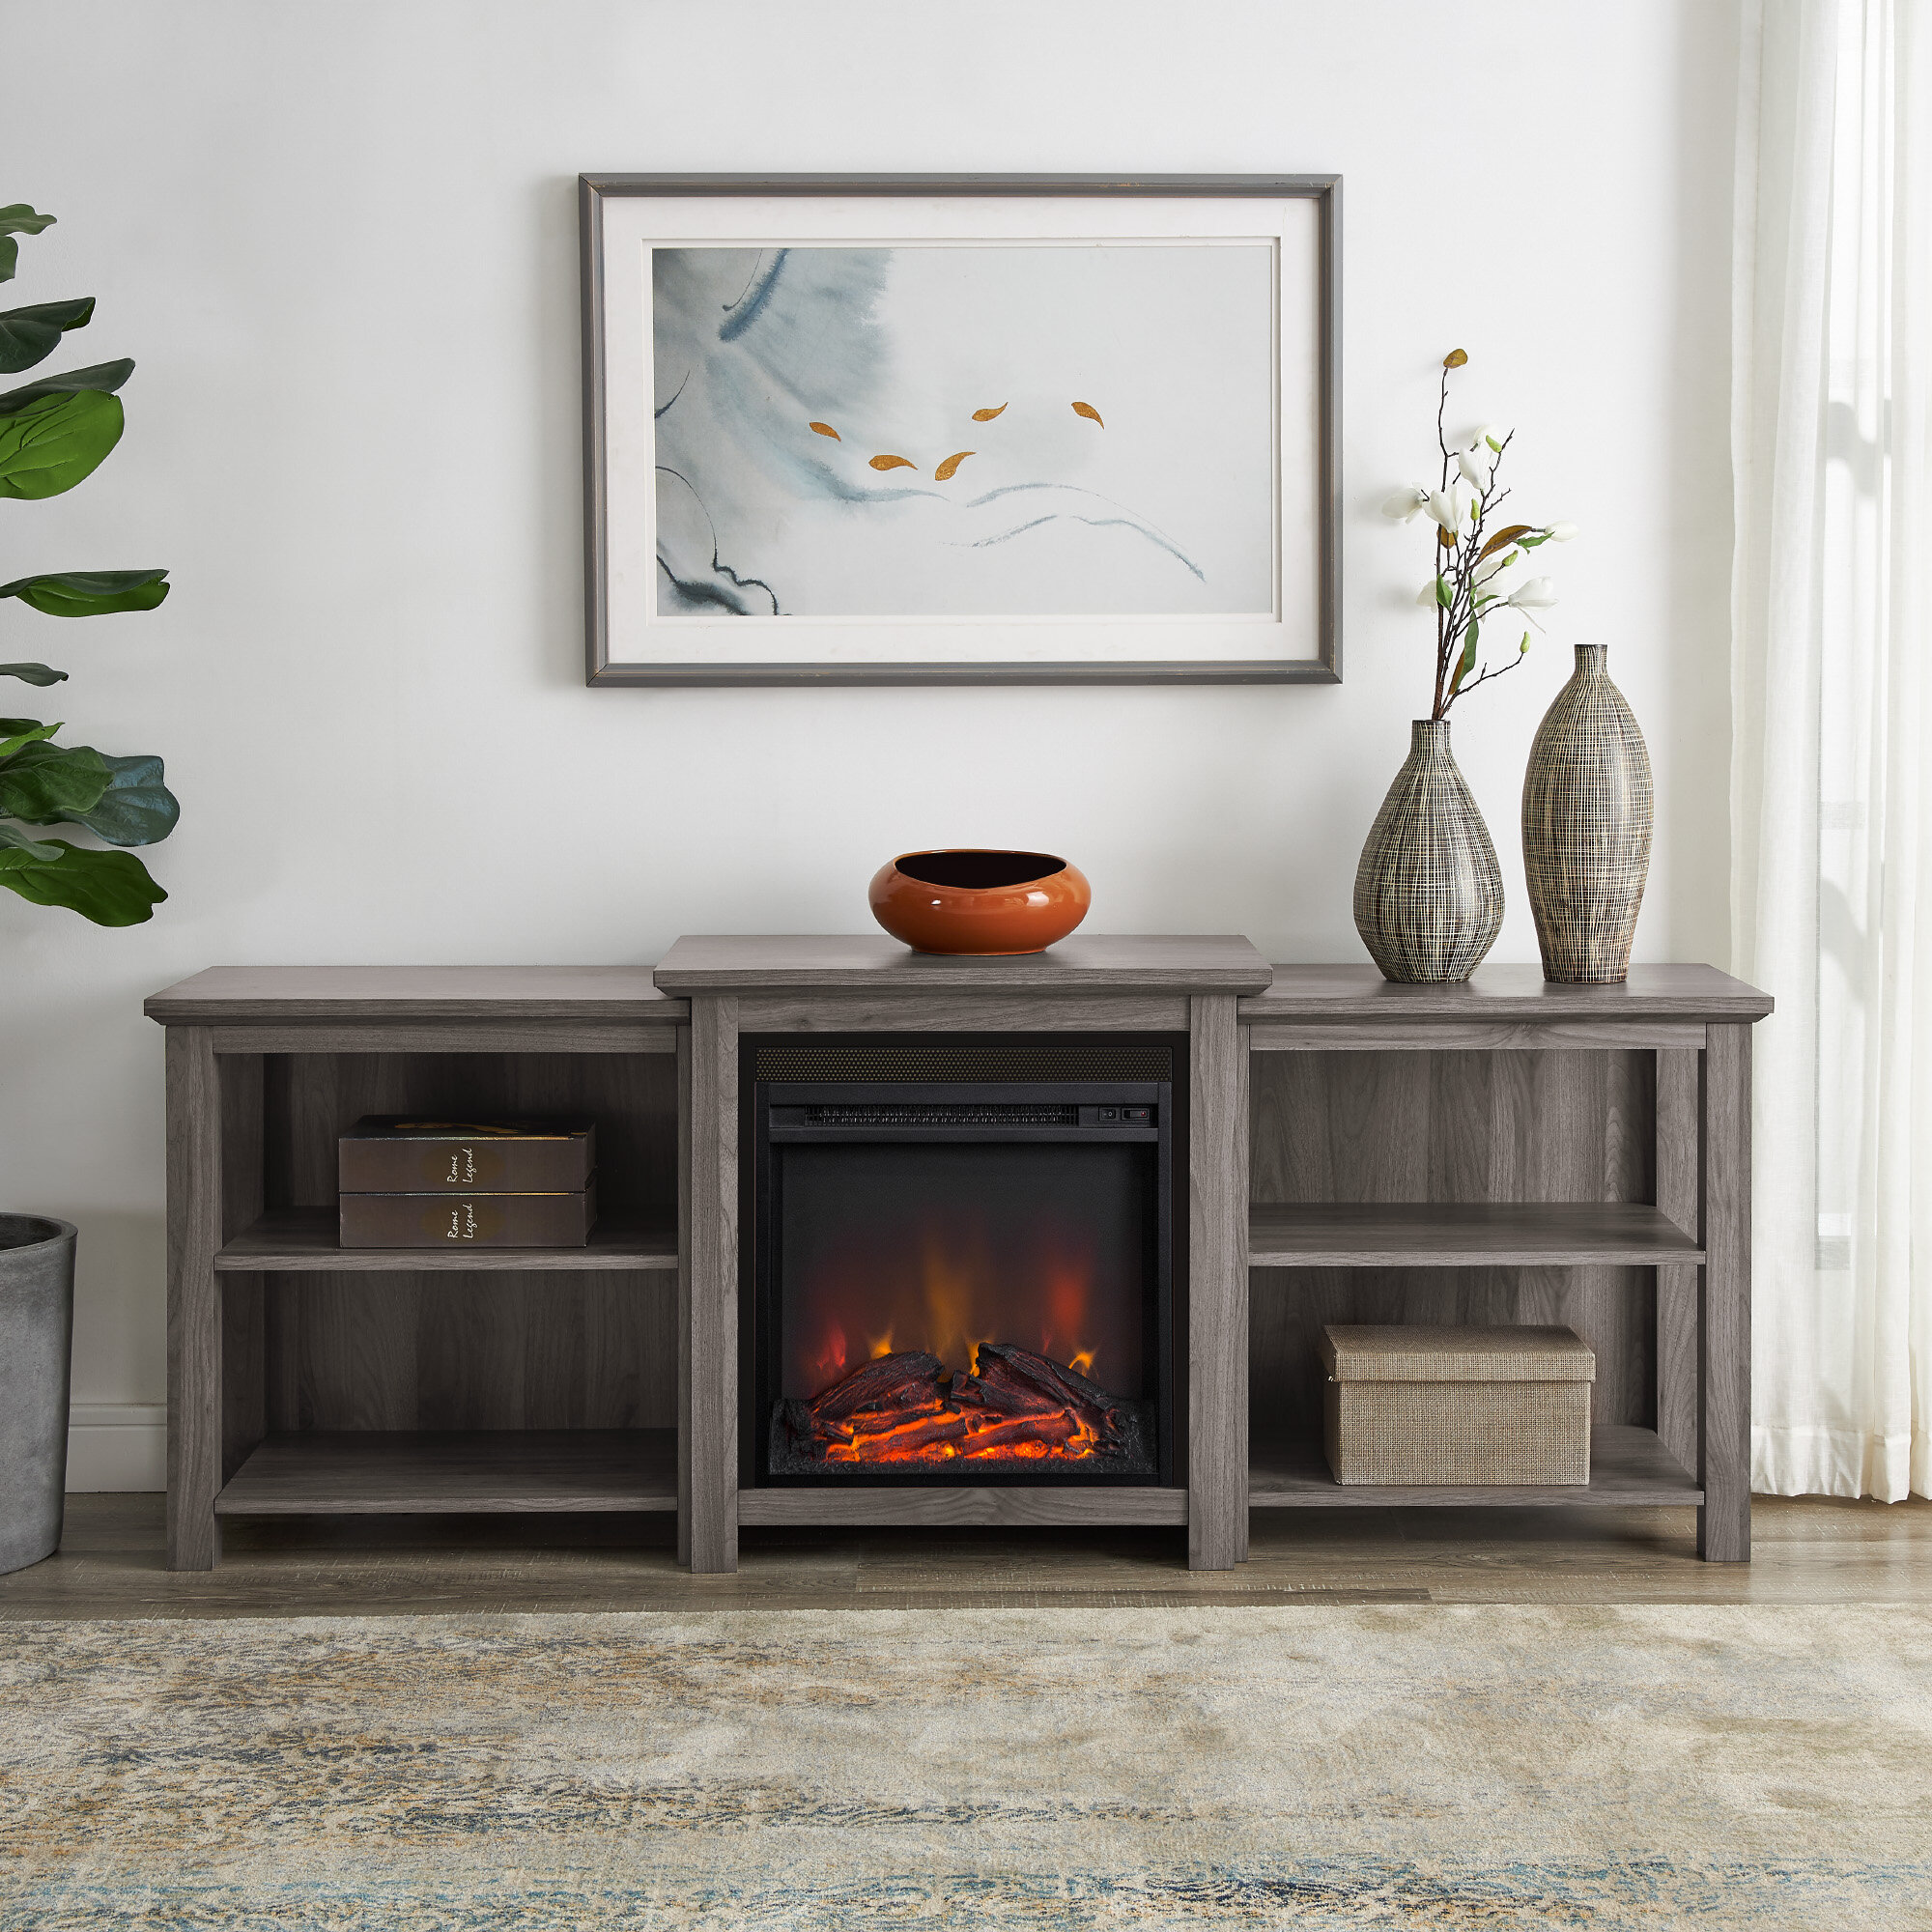 Millwood Pines Woodbury Tv Stand For Tvs Up To 70 With Electric Fireplace Included Reviews Wayfair Ca